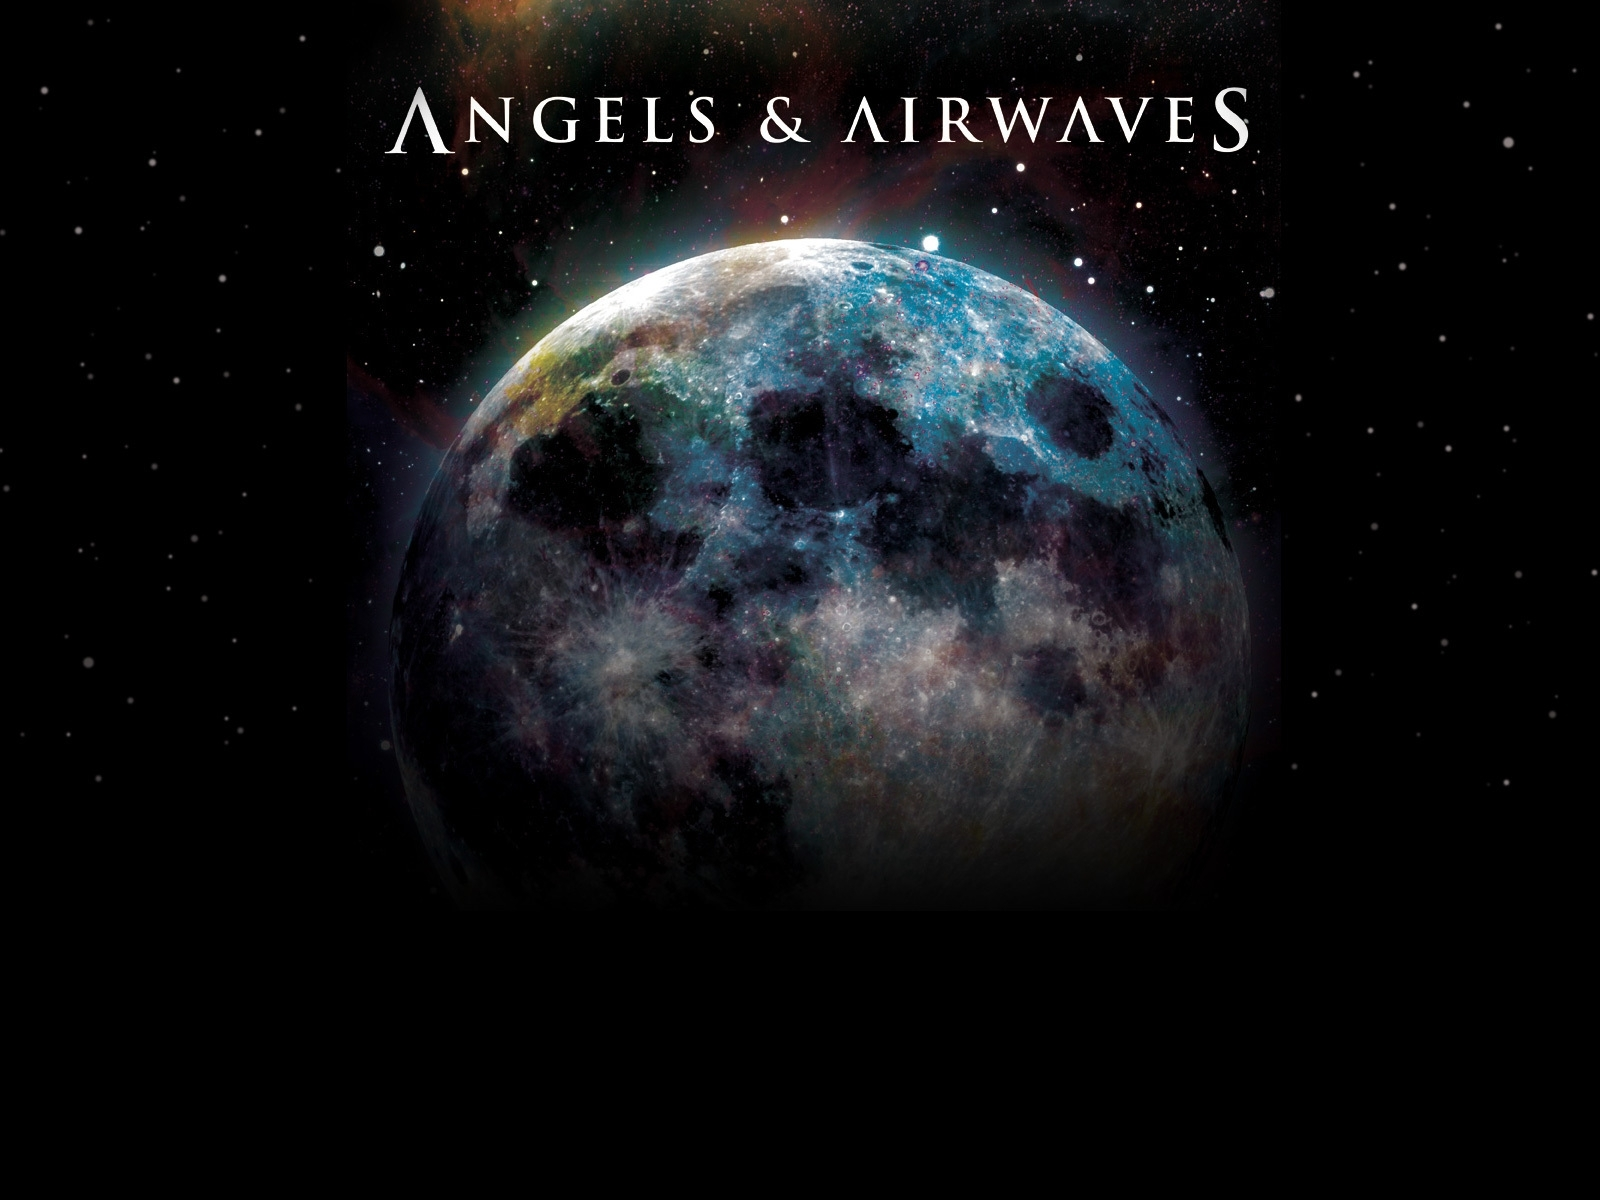 angels and airwaves images ava moon hd wallpaper and background